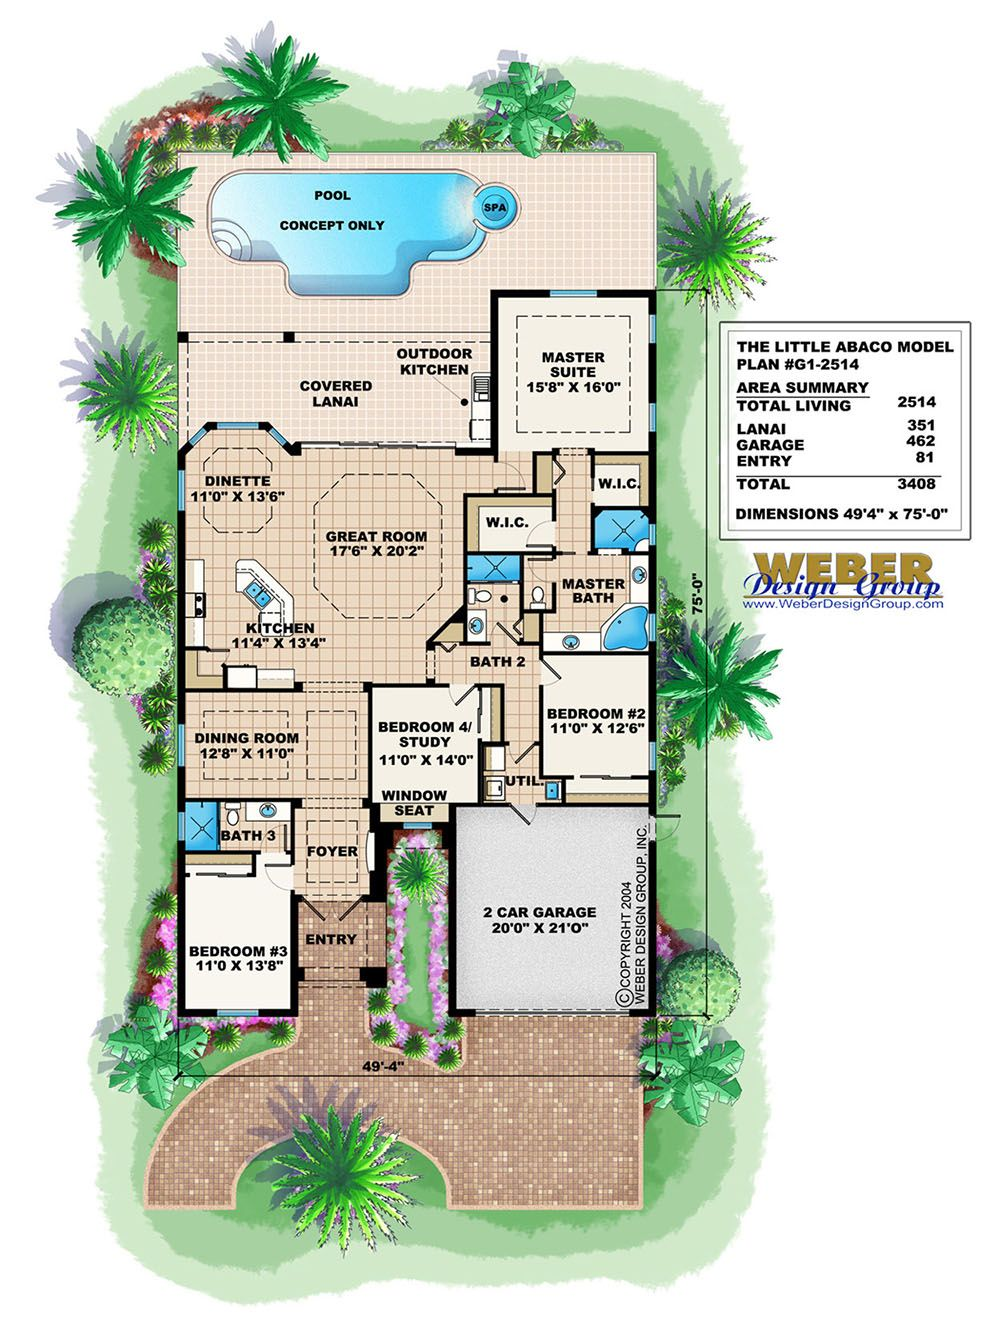 Mediterranean House Plan One Story Home Floor Plan For Narrow Lot Mediterranean House Plans House Plans One Story Florida House Plans